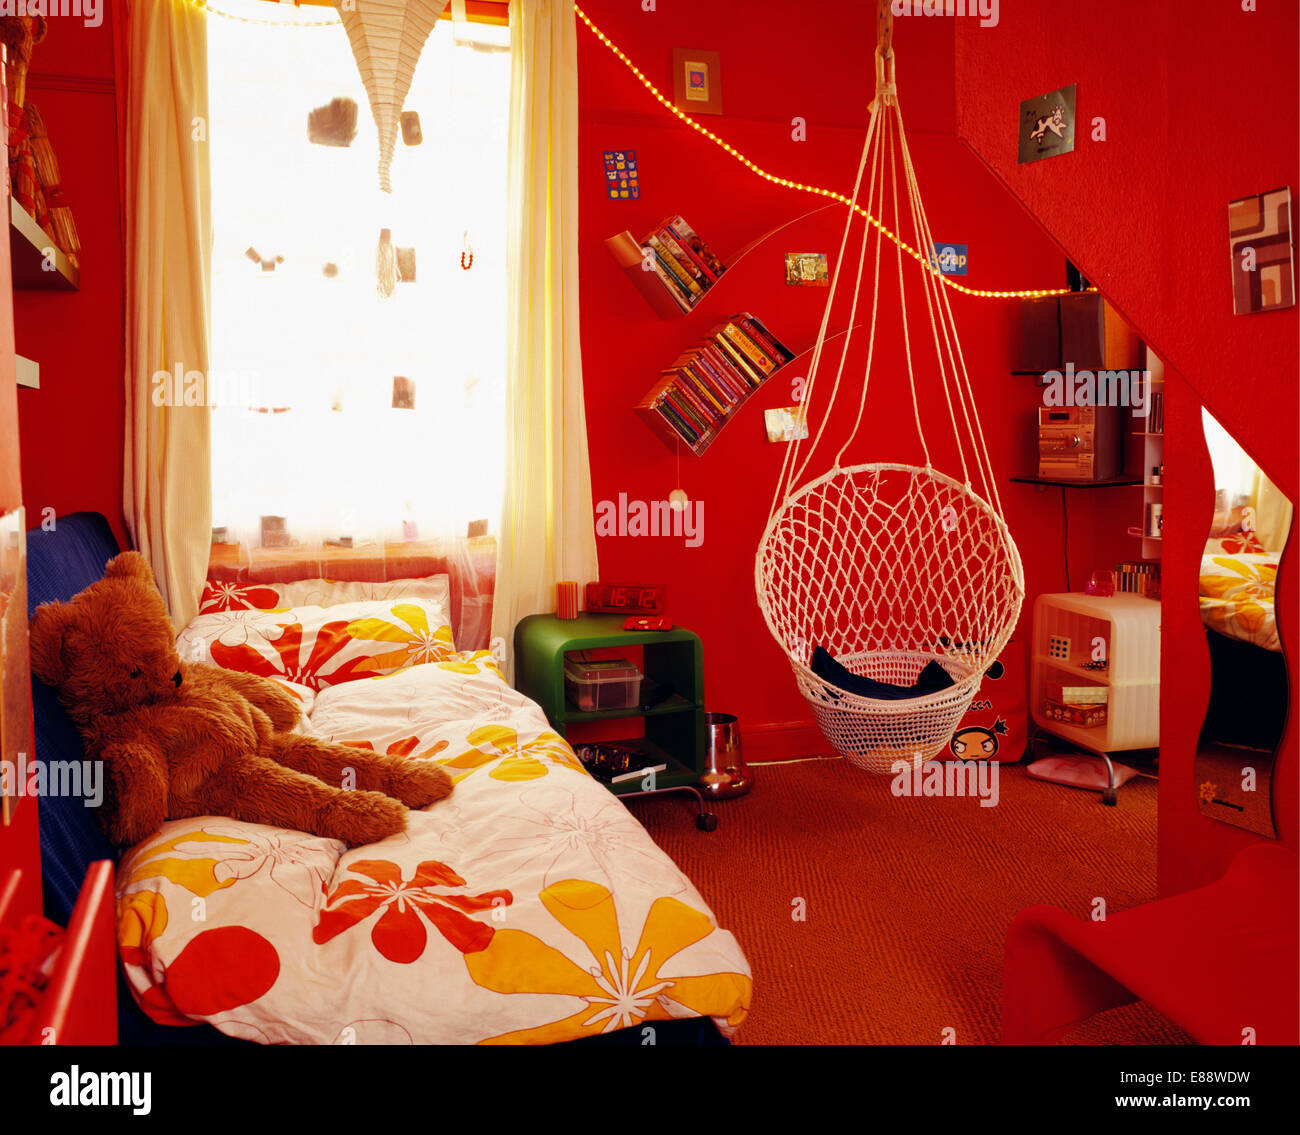 Stylised-floral patterned duvet on bed in teenager's red bedroom with cane chair suspended from the ceiling - Stock Image